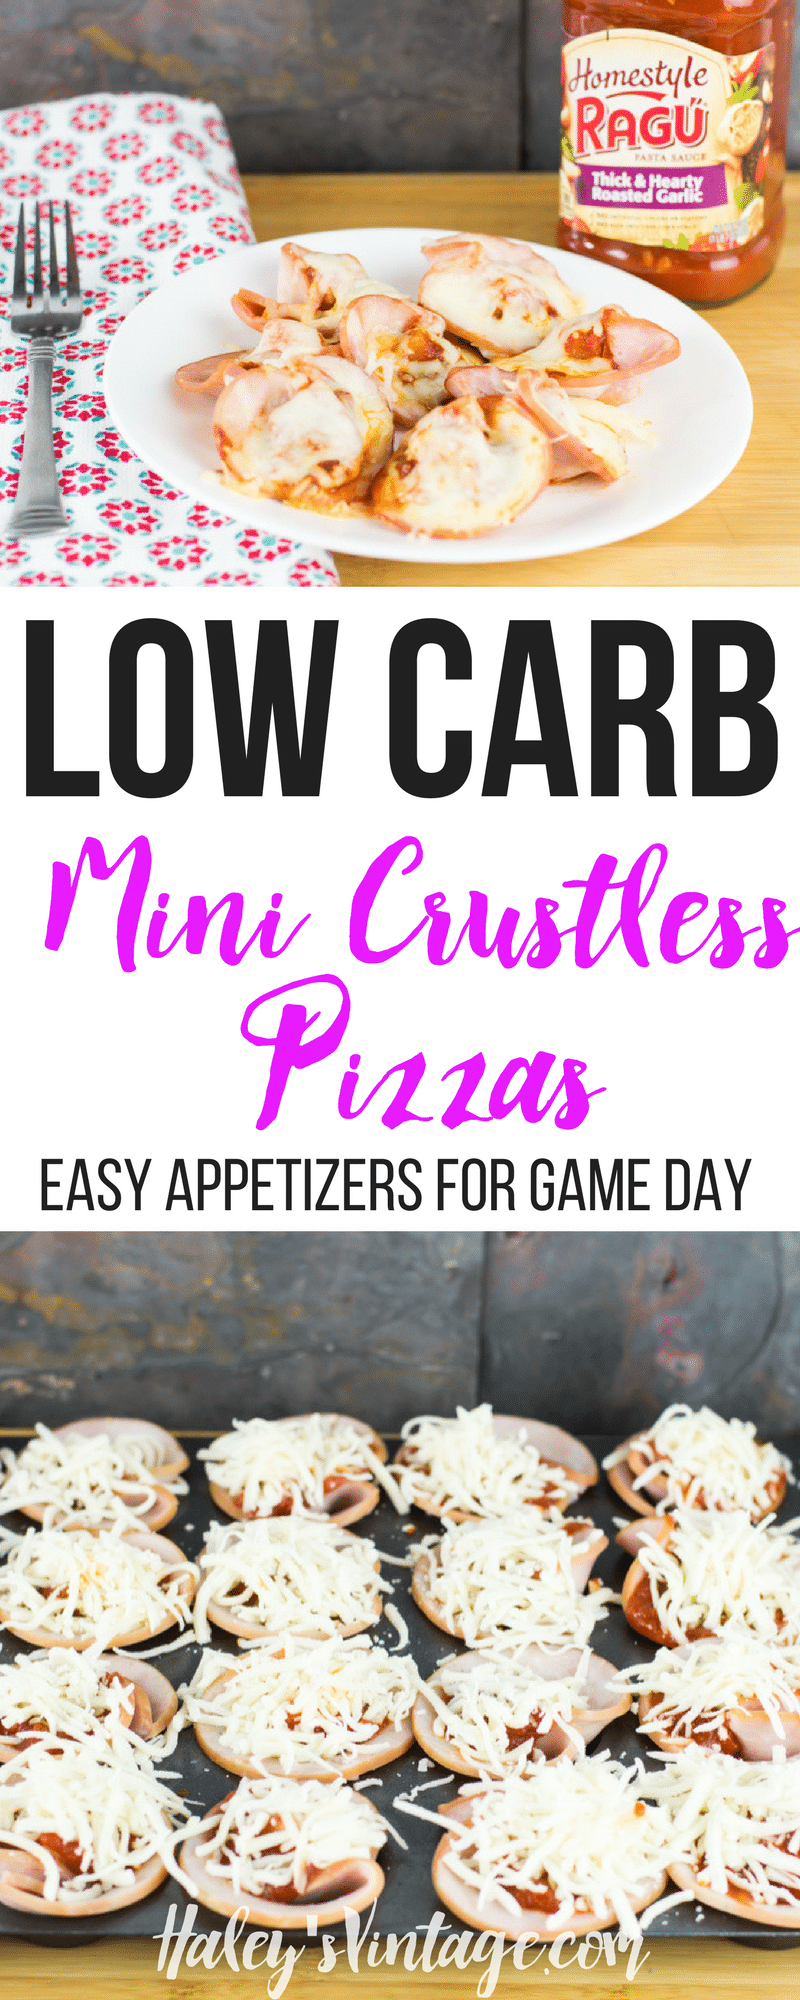 Who doesn't love a quick appetizer for Game Day? If you are looking to eat a little healthier this year, you will love my Low Carb Mini Crustless Pizzas!